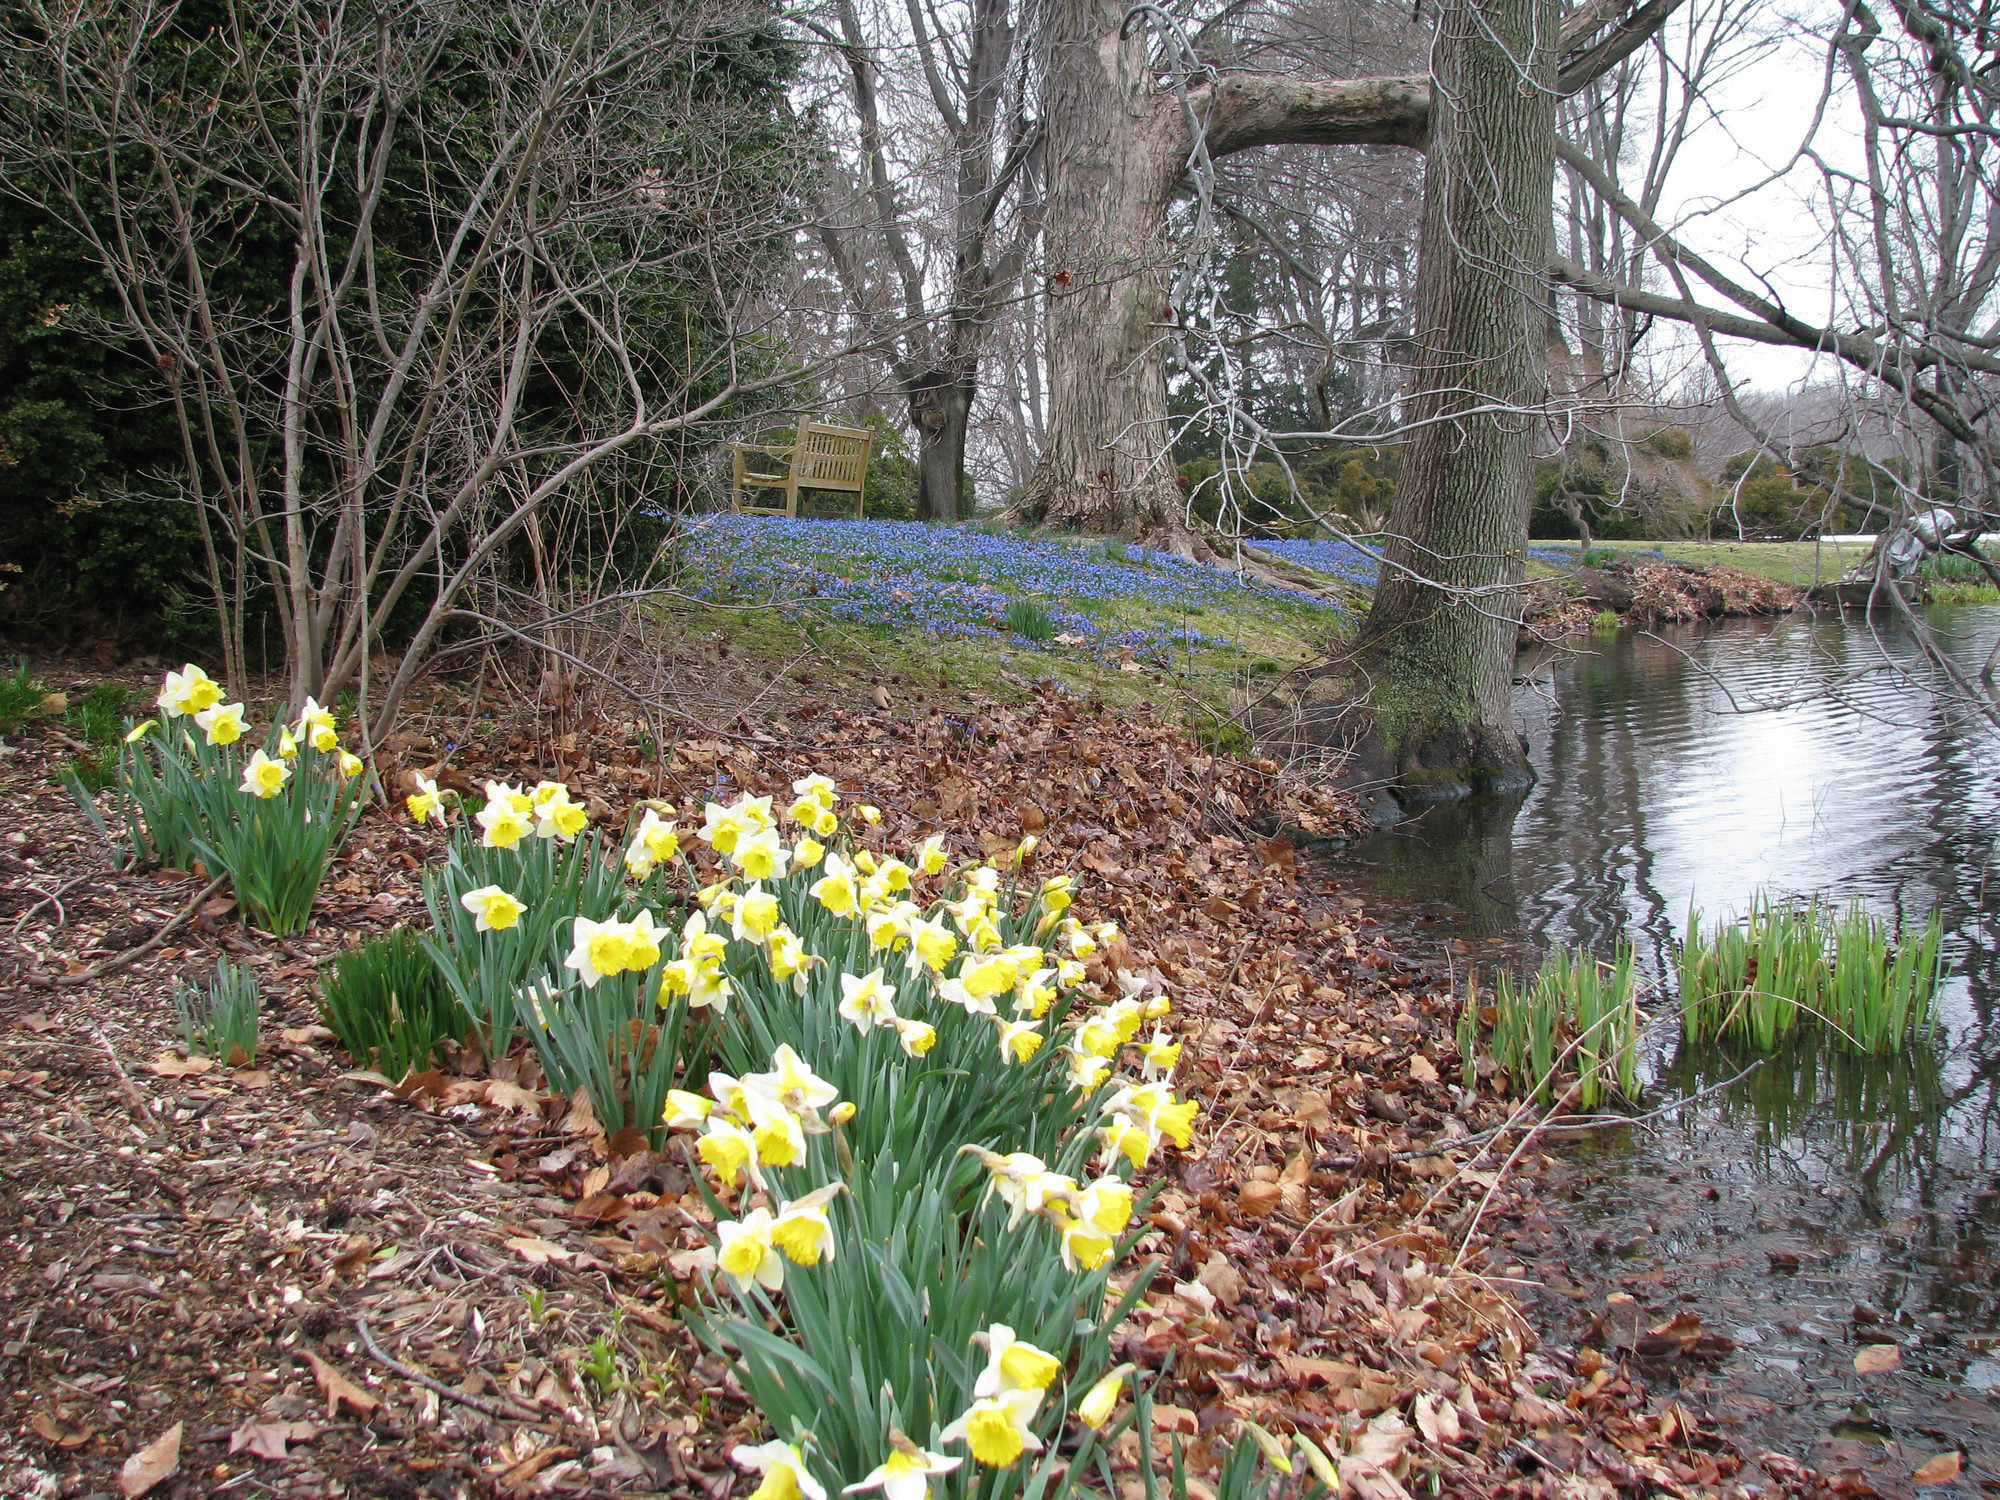 Spring splendor: Daffodils make their appearance at Old Westbury Gardens, a welcoming sight for all.